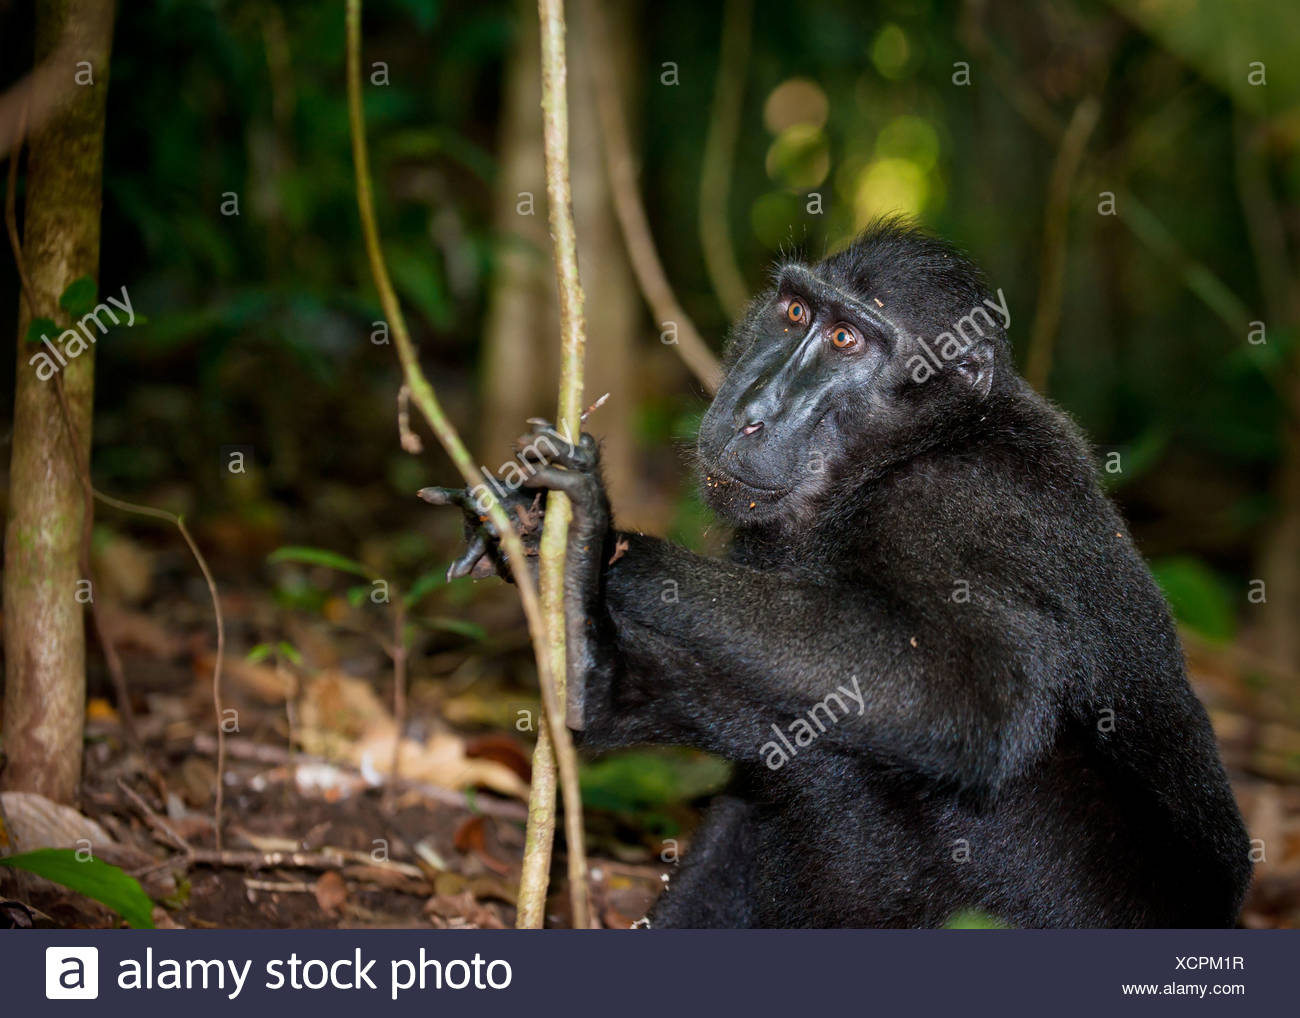 Black macaque, Sulawesi, Indonesia Stock Photo